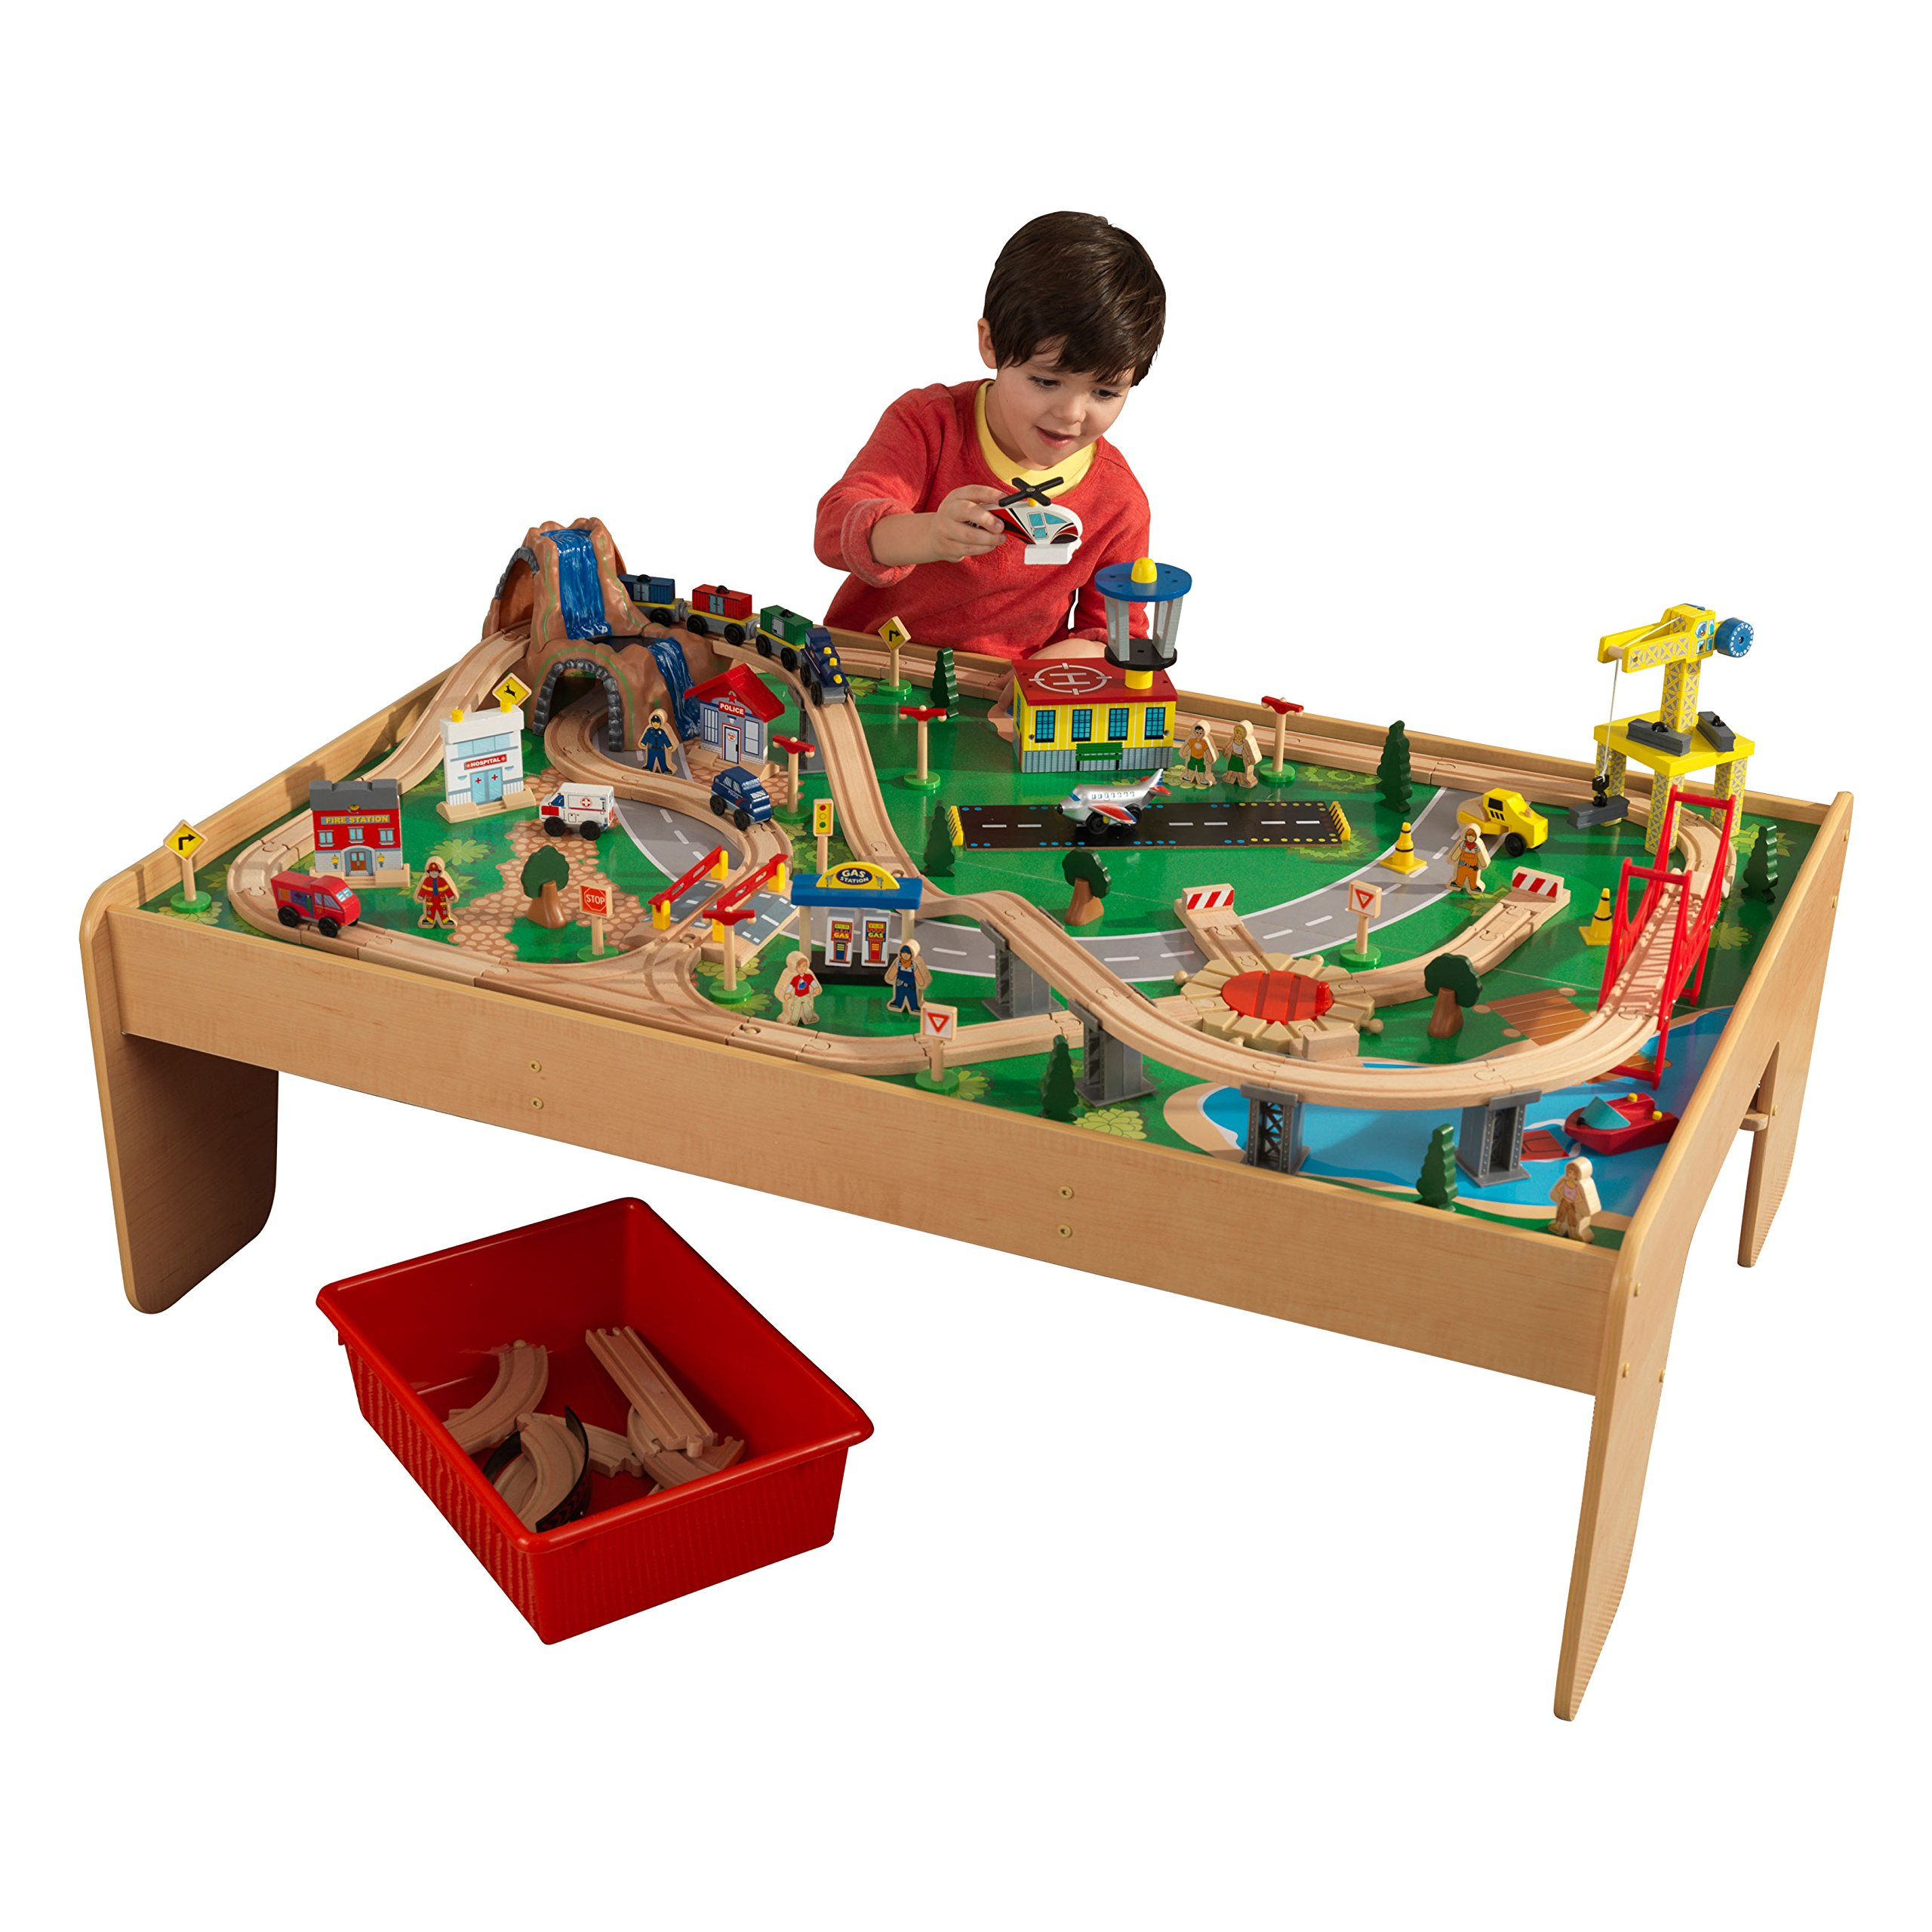 KidKraft Waterfall Mountain Train Set and Table by KidKraft (Image #1)